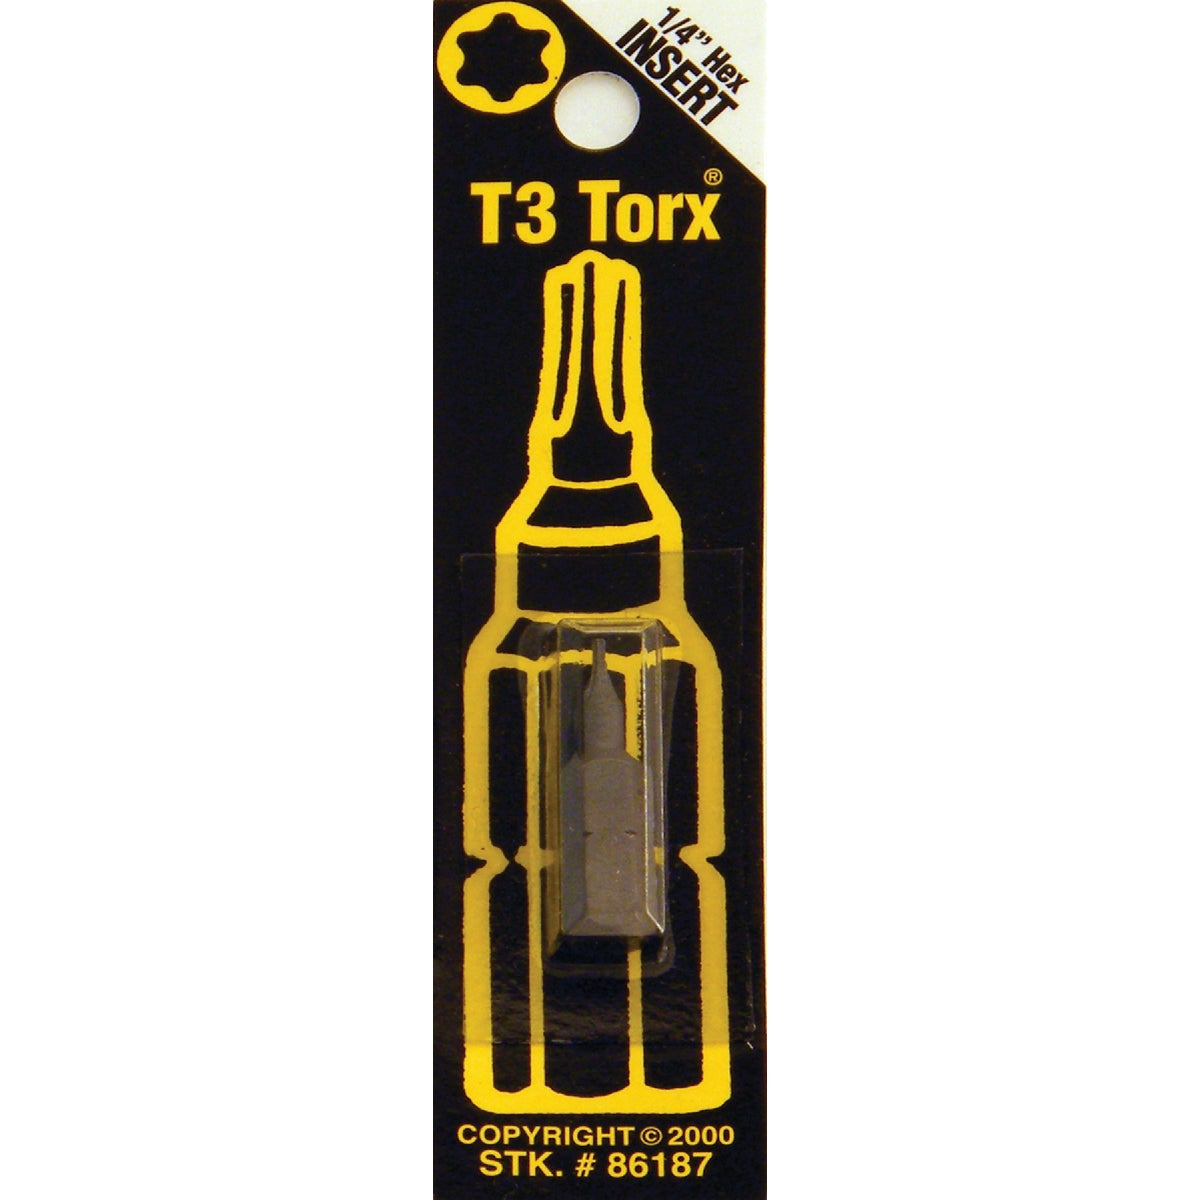 T3 TORX SECURITY BIT - 86187 by Bwt Inc